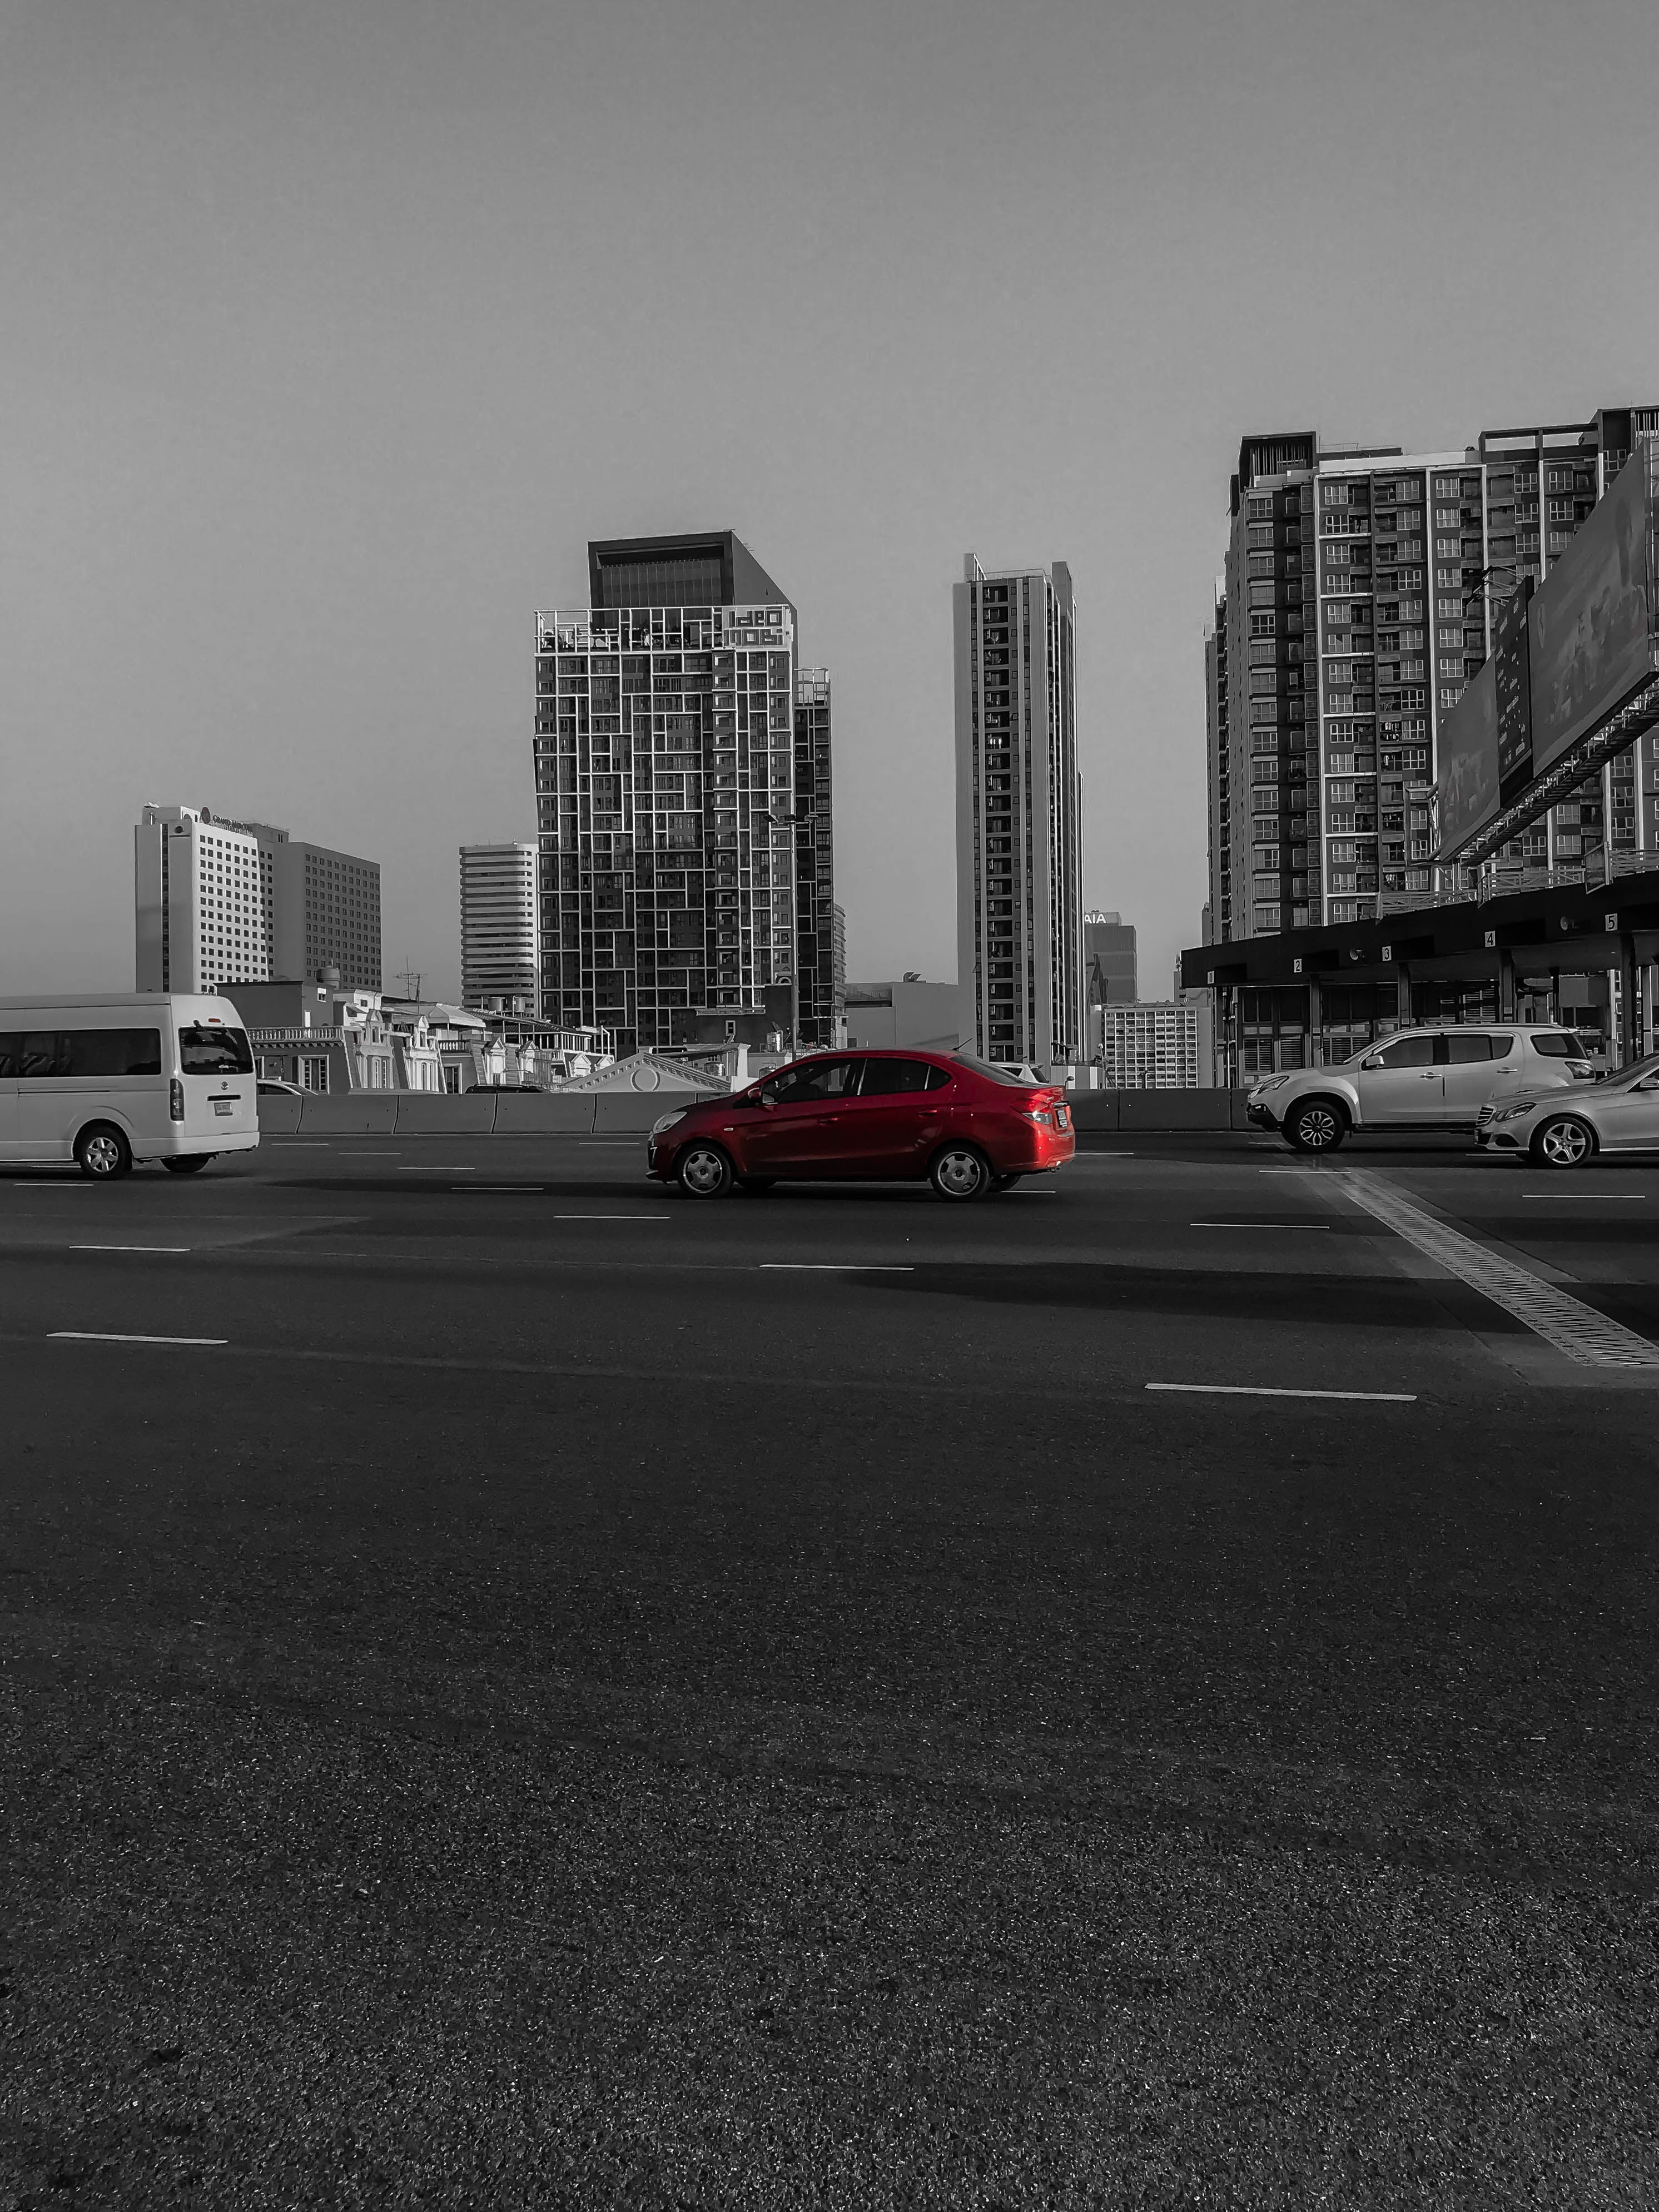 Free stock photo of black and white, car, cars, city